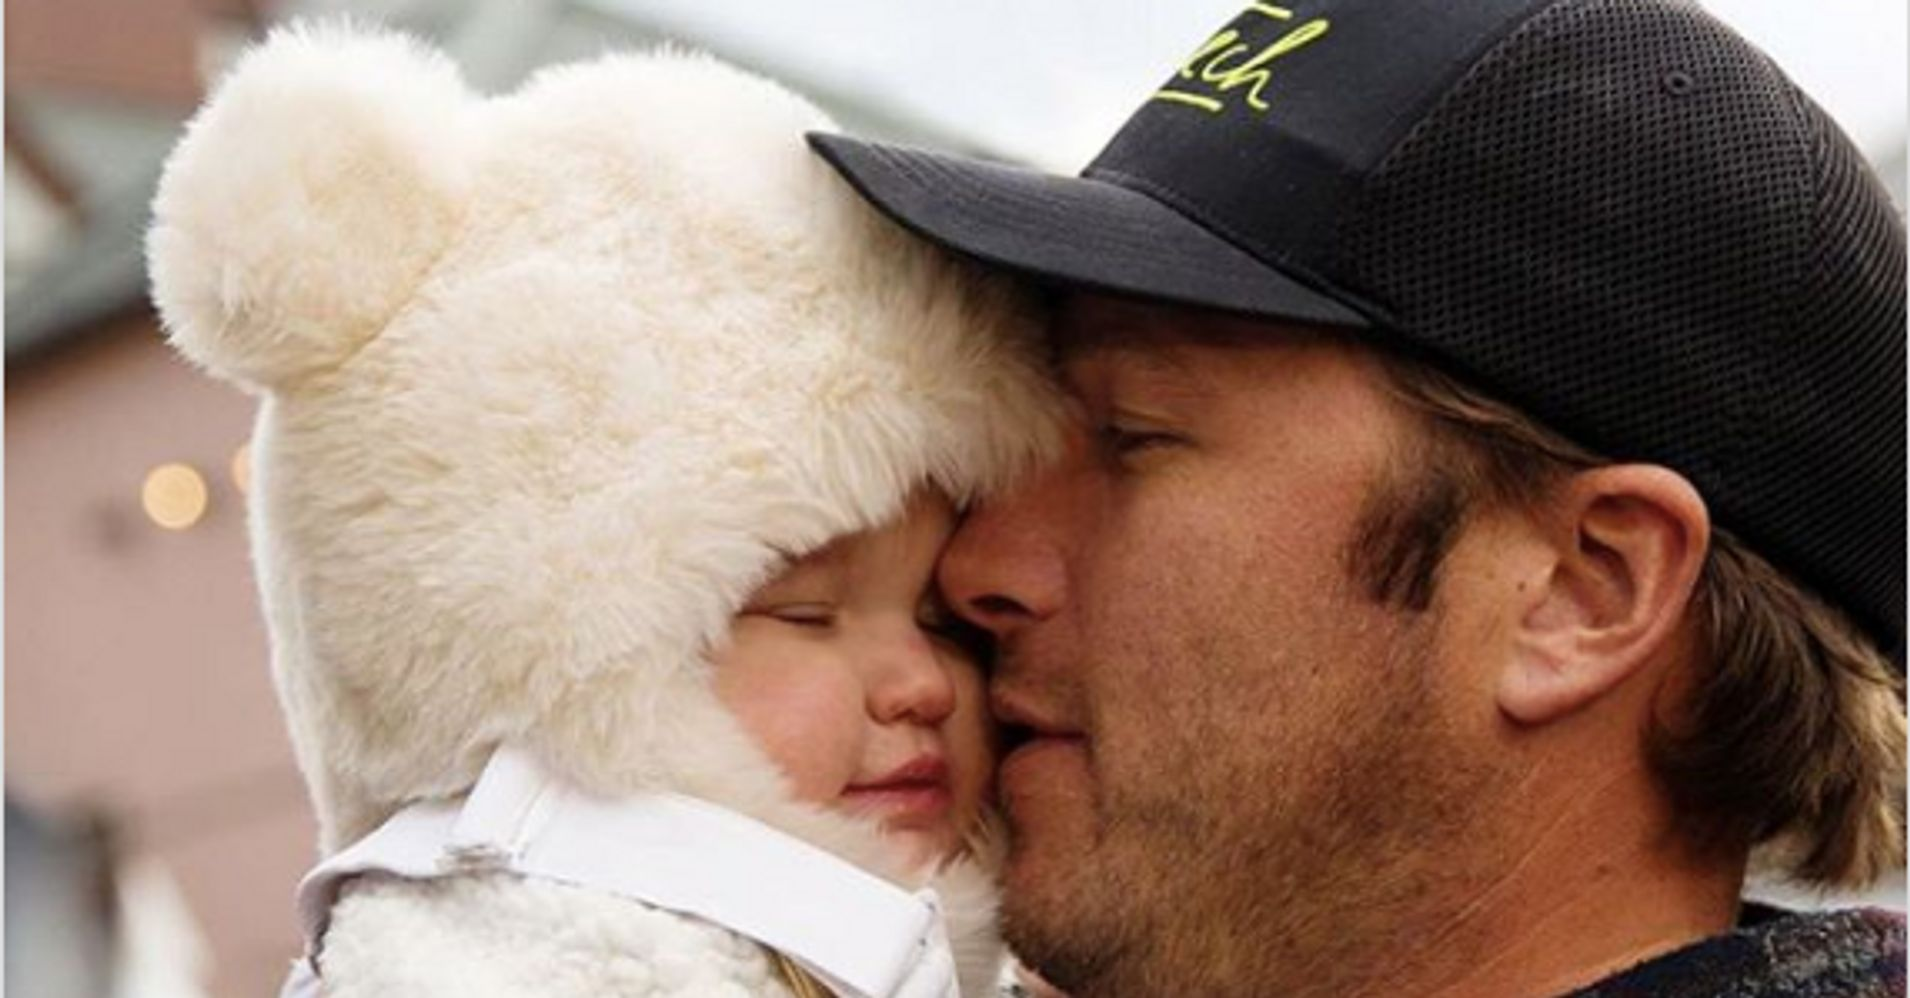 Bode Miller And Morgan Beck Thank Supporters After 19-Month-Old Daughter Drowns